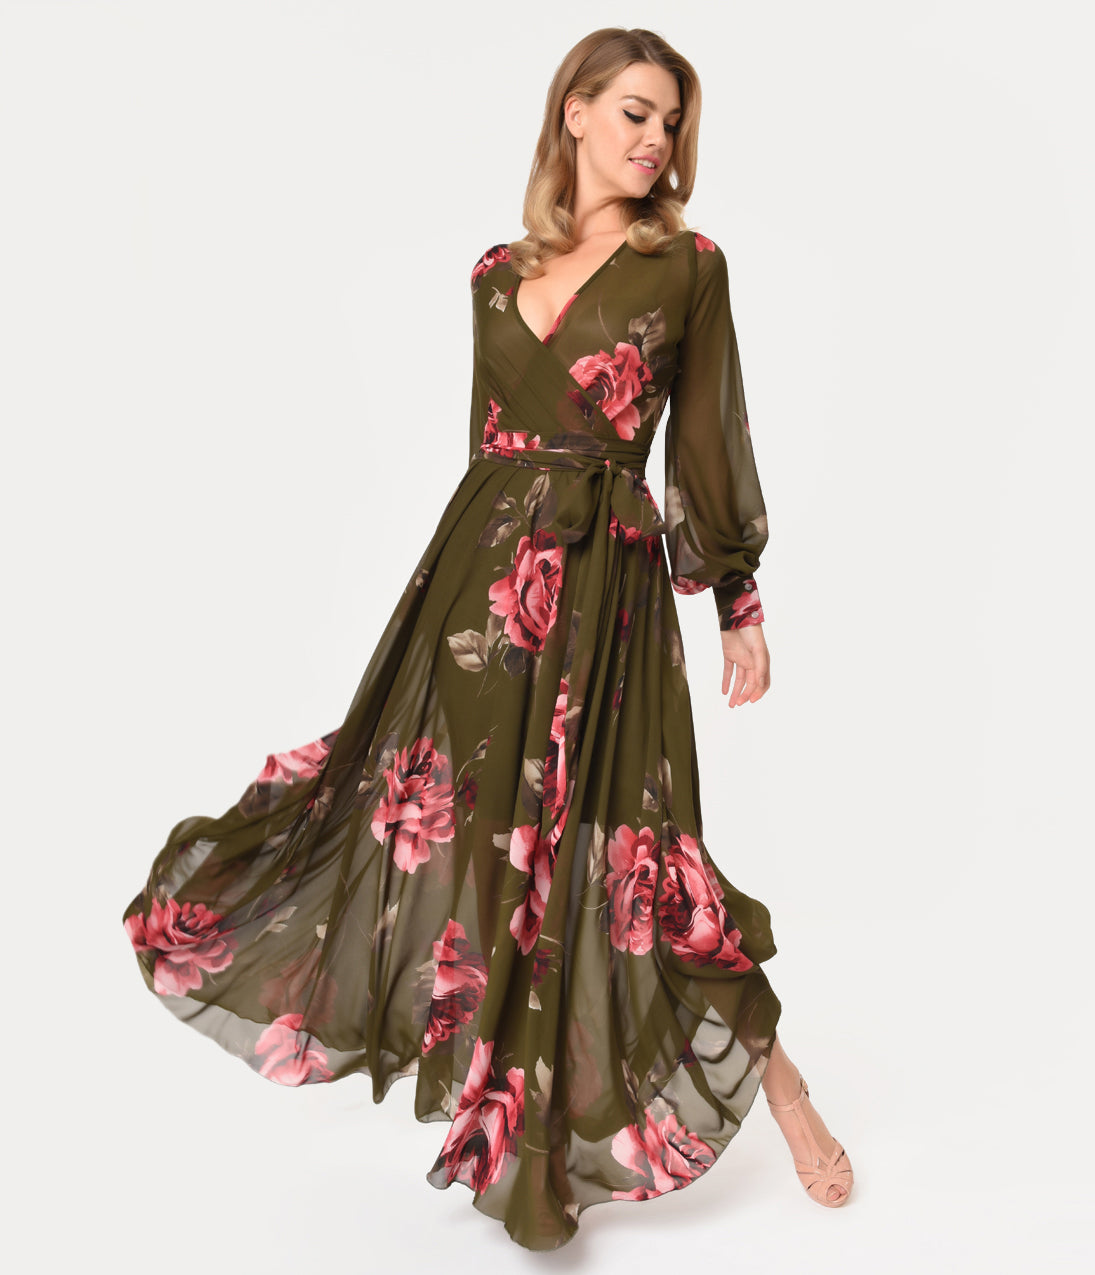 1960s Dresses – A Rainbow of 50 Dresses (Pictures) Vintage Style Olive Green  Pink Roses Long Sleeve Maxi Dress $98.00 AT vintagedancer.com